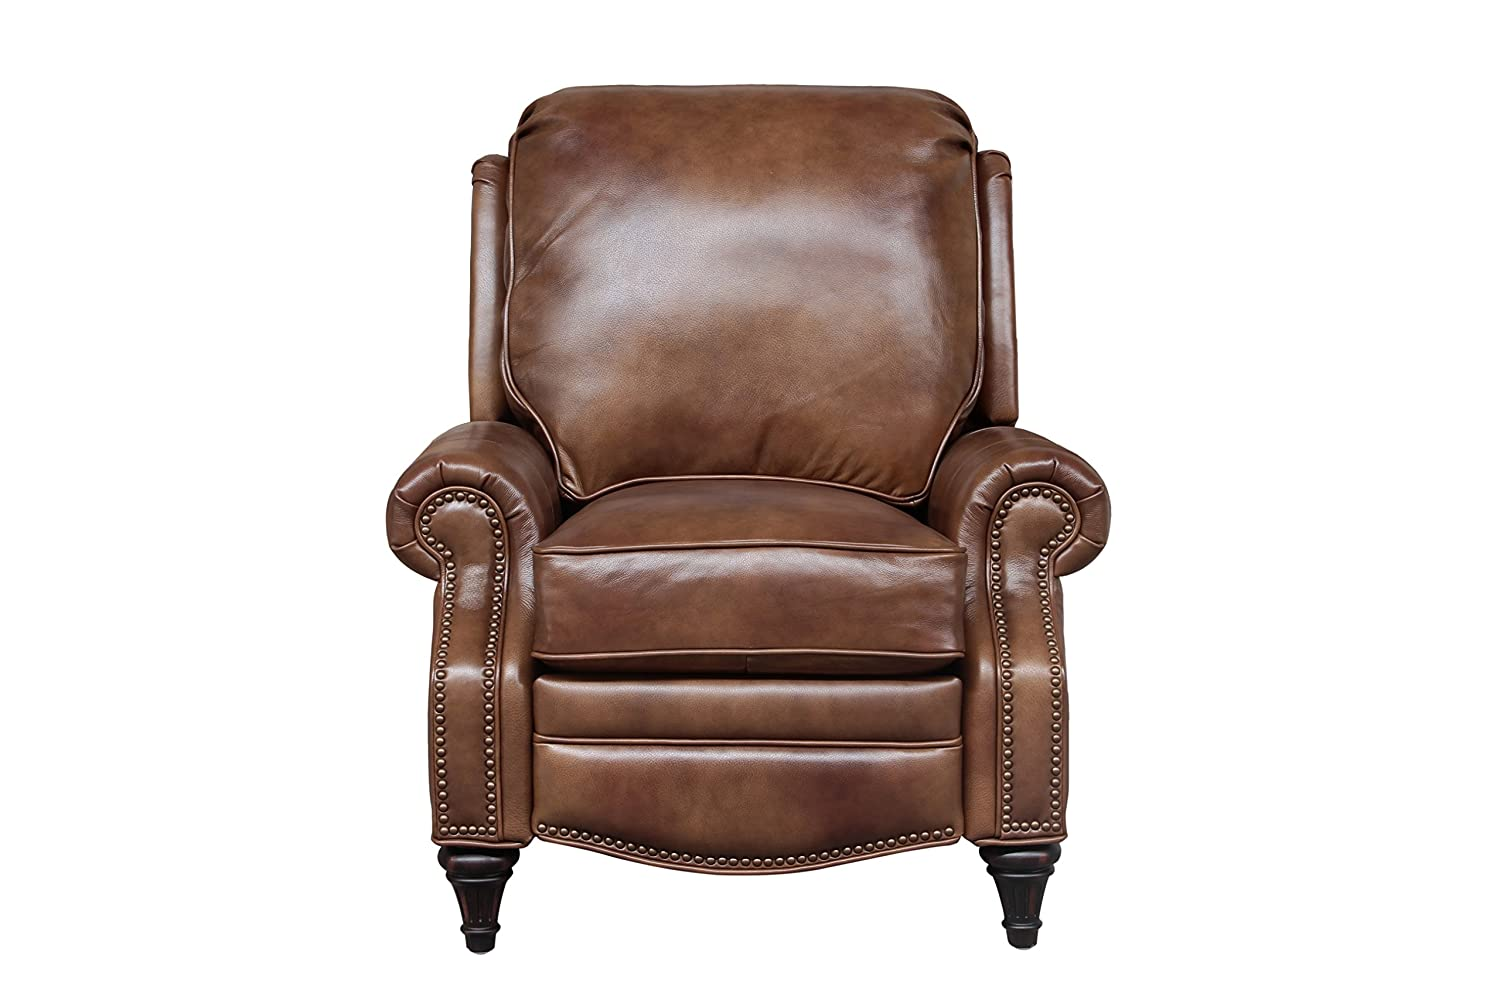 BarcaLounger Avery 7-2160 Push Back Manual Push Back Recliner Chair – 5702-85 Wenlock Tawny All Leather